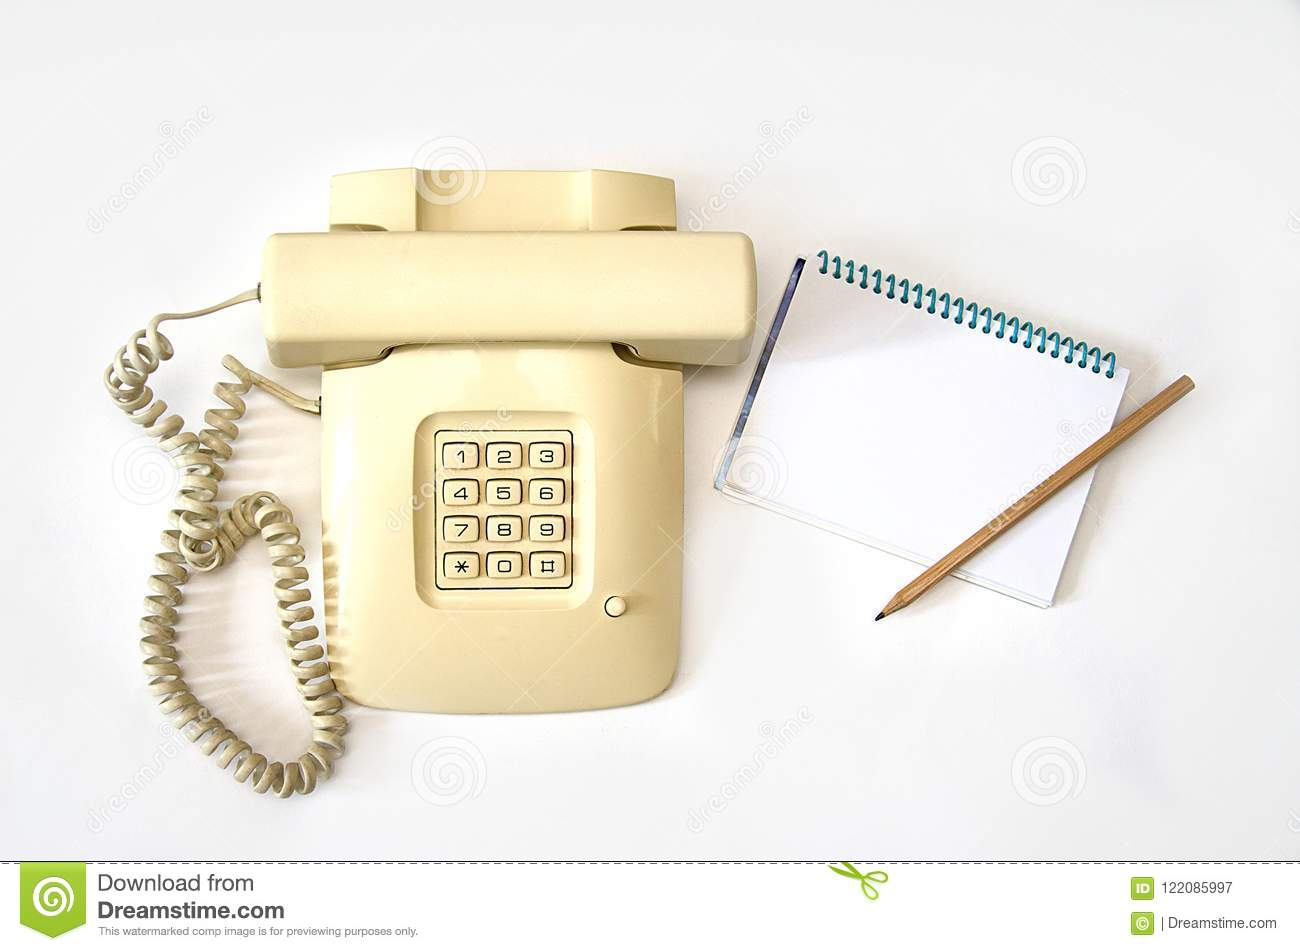 Isolate beige old telephone with wire tube lies on white background